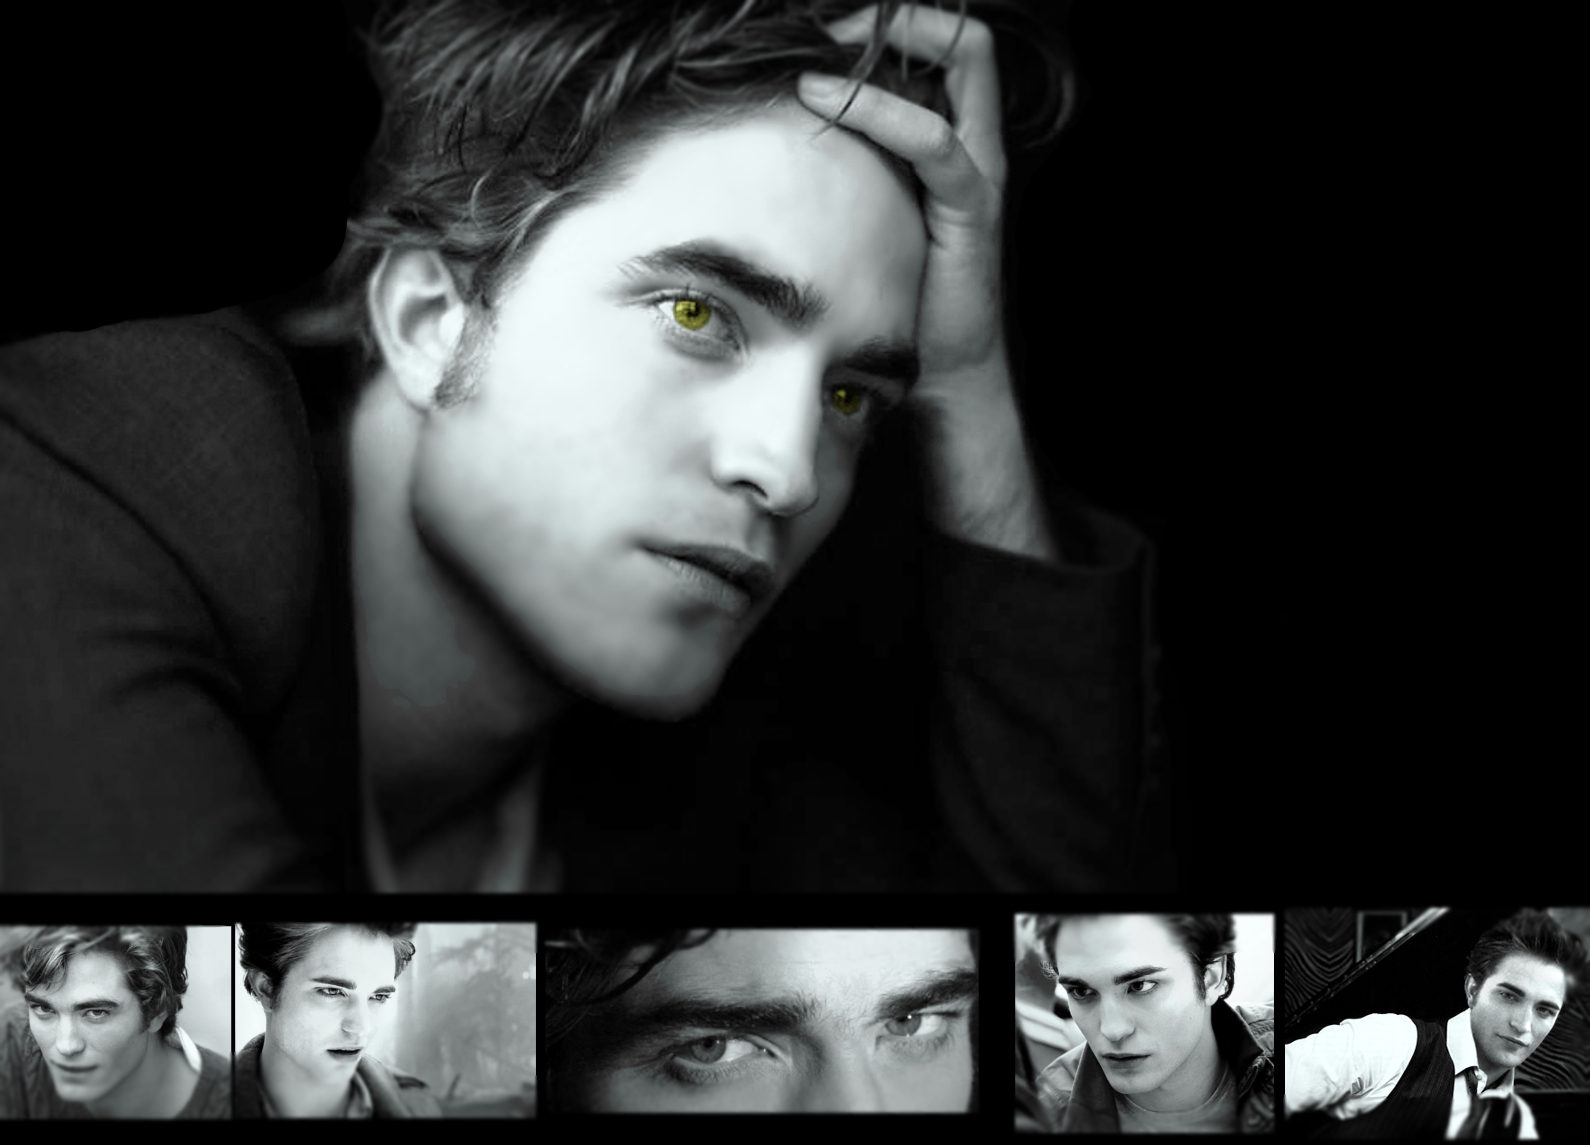 http://1.bp.blogspot.com/_J62HGZ9zLQg/SxSLy8LP6lI/AAAAAAAAAE0/EXuOeVqtxHs/s1600/Rob_Pattinson_Wallpaper_by_Keridabum.jpg